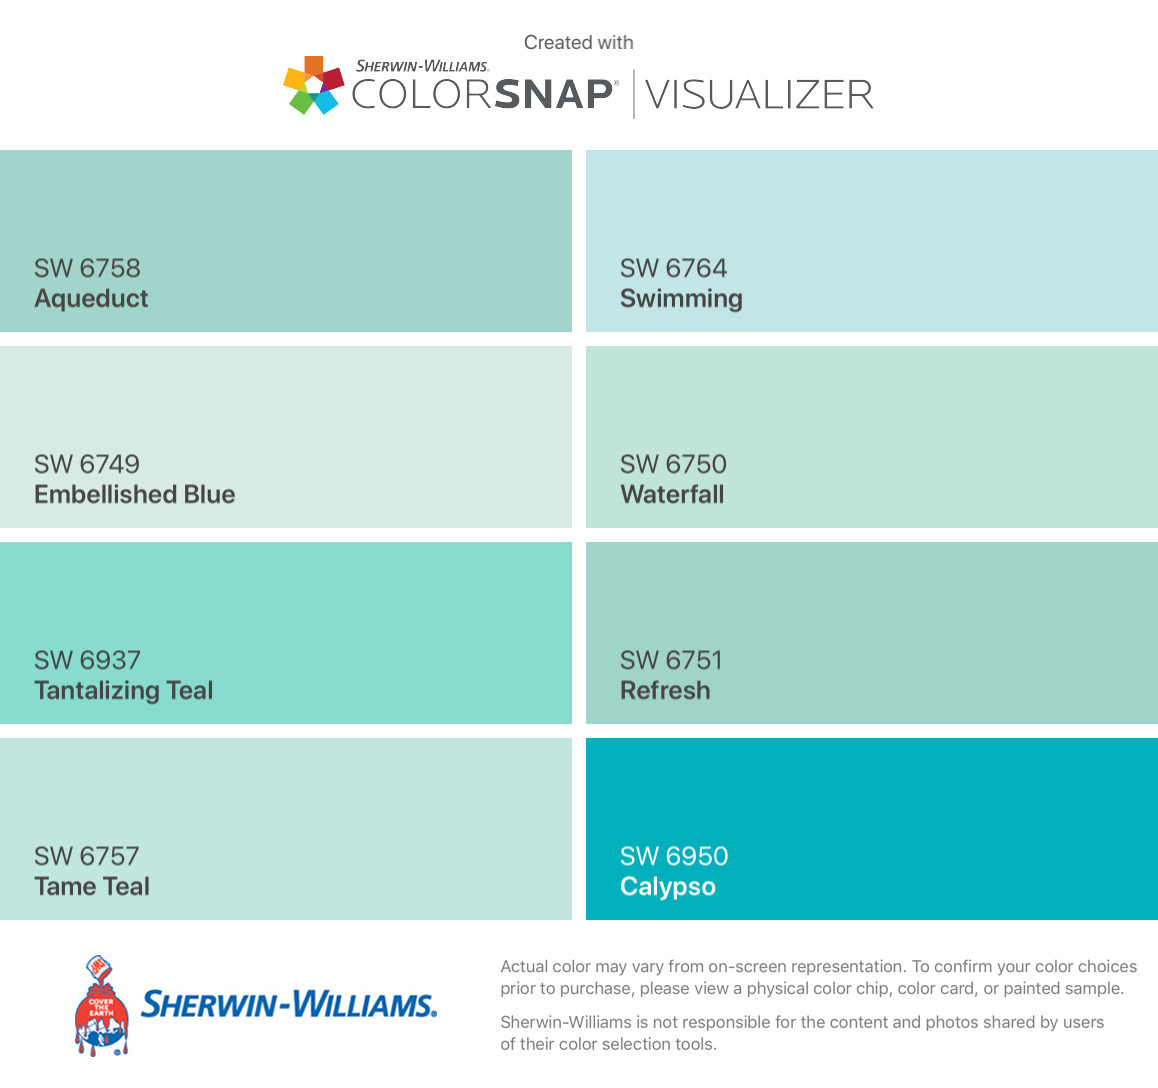 I Found These Colors With Colorsnap Visualizer For Iphone By Sherwin Will Teal Paint Color Sherwin Williams Aqua Paint Color Sherwin Williams Light Teal Paint